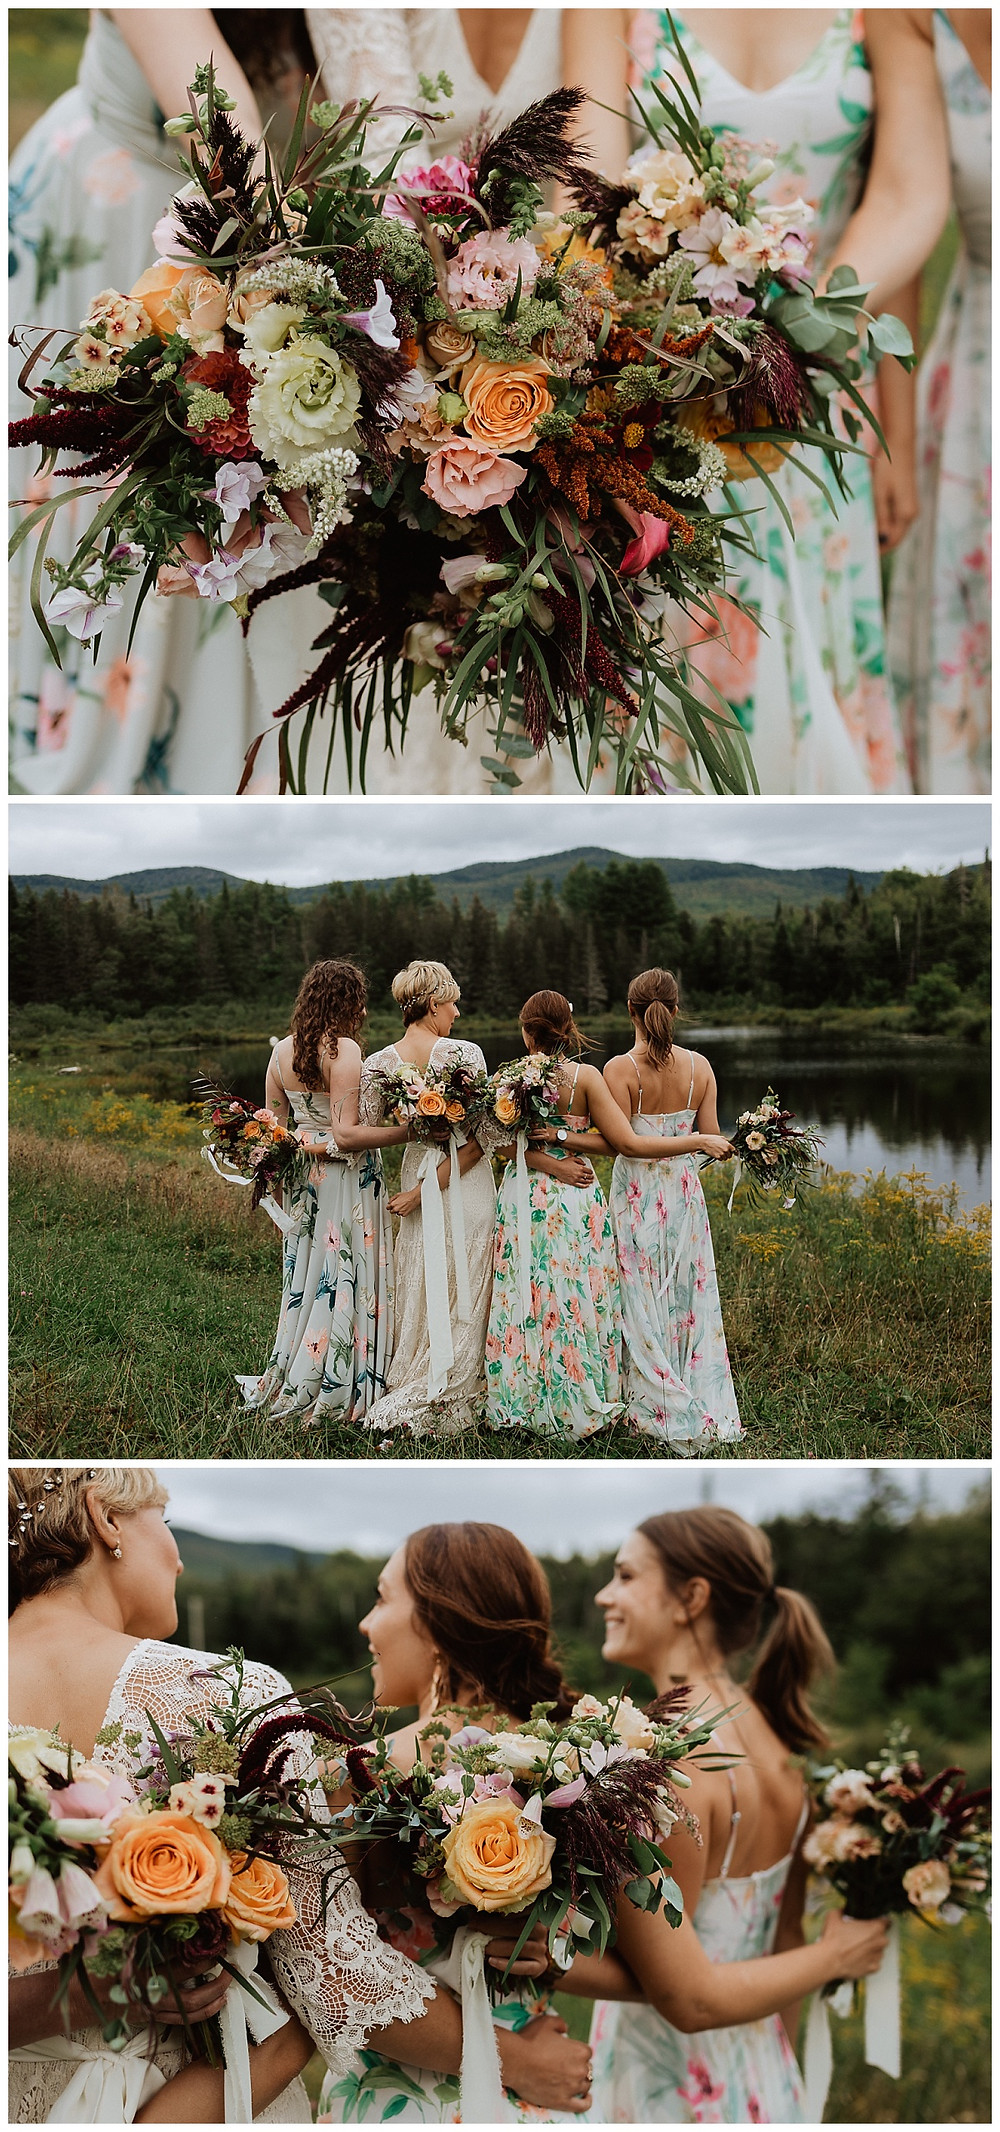 Bridal Party Portraits and Bouquets